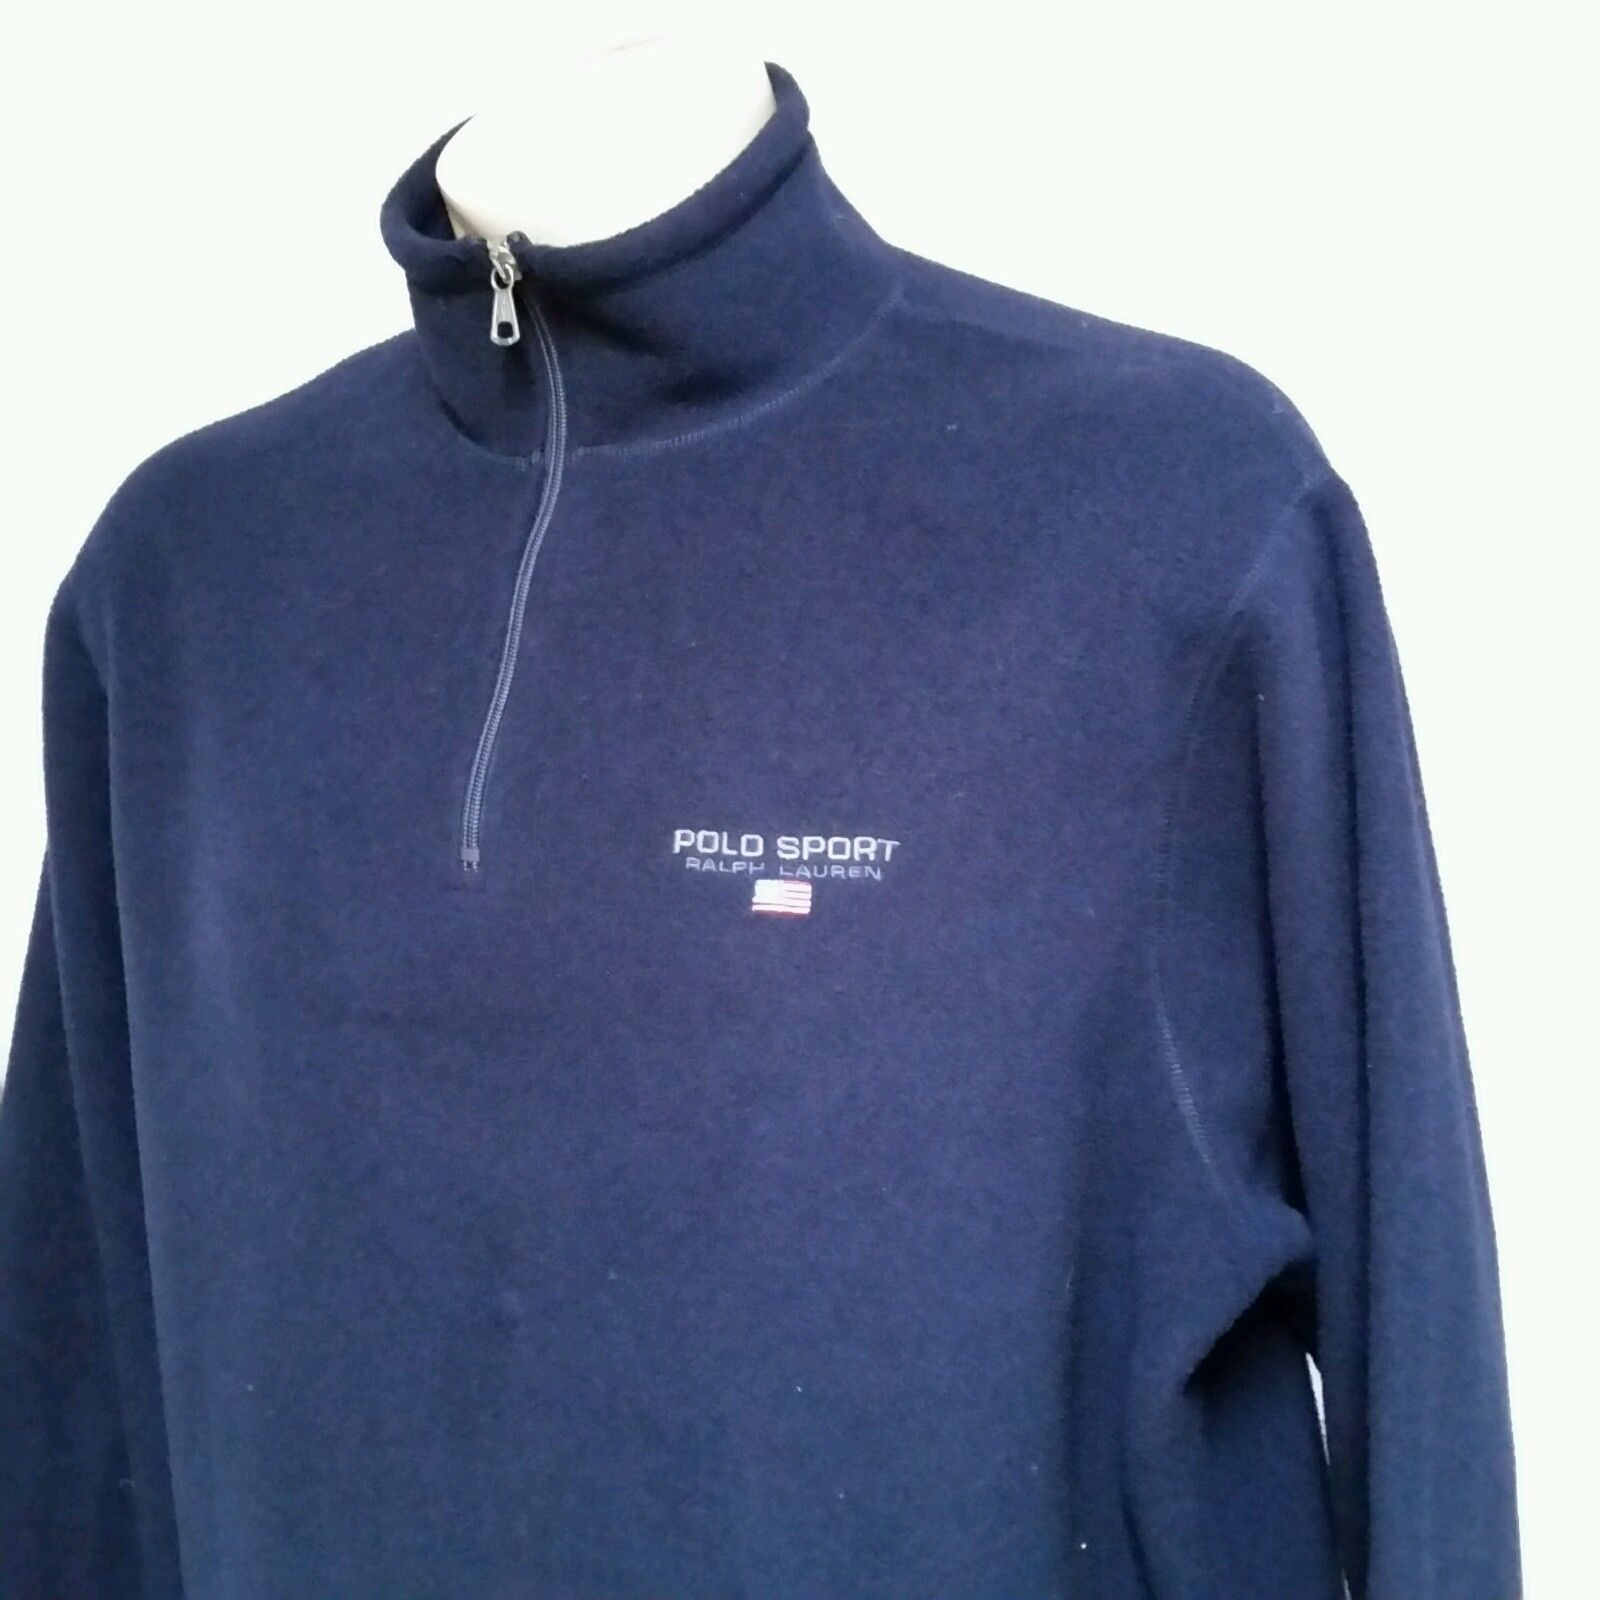 VTG 90`s Ralph Lauren Polo Sport Fleece Jacket Sweatshirt Stadium Bear Pwing XL